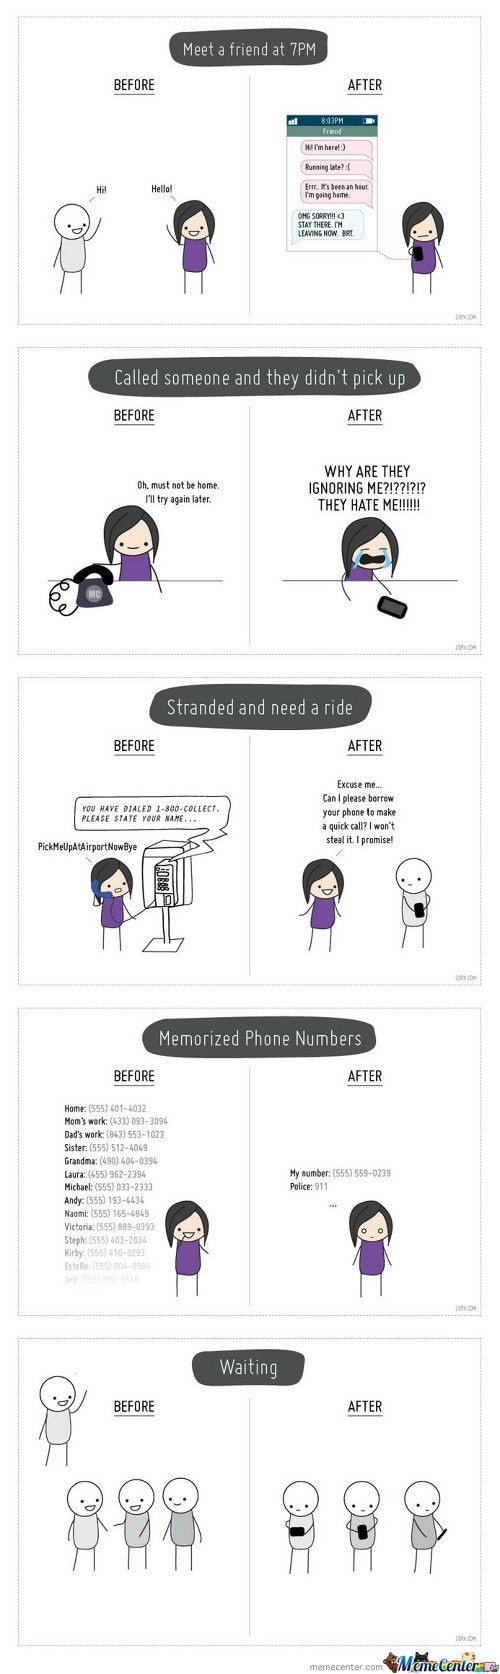 Cell phones before and after